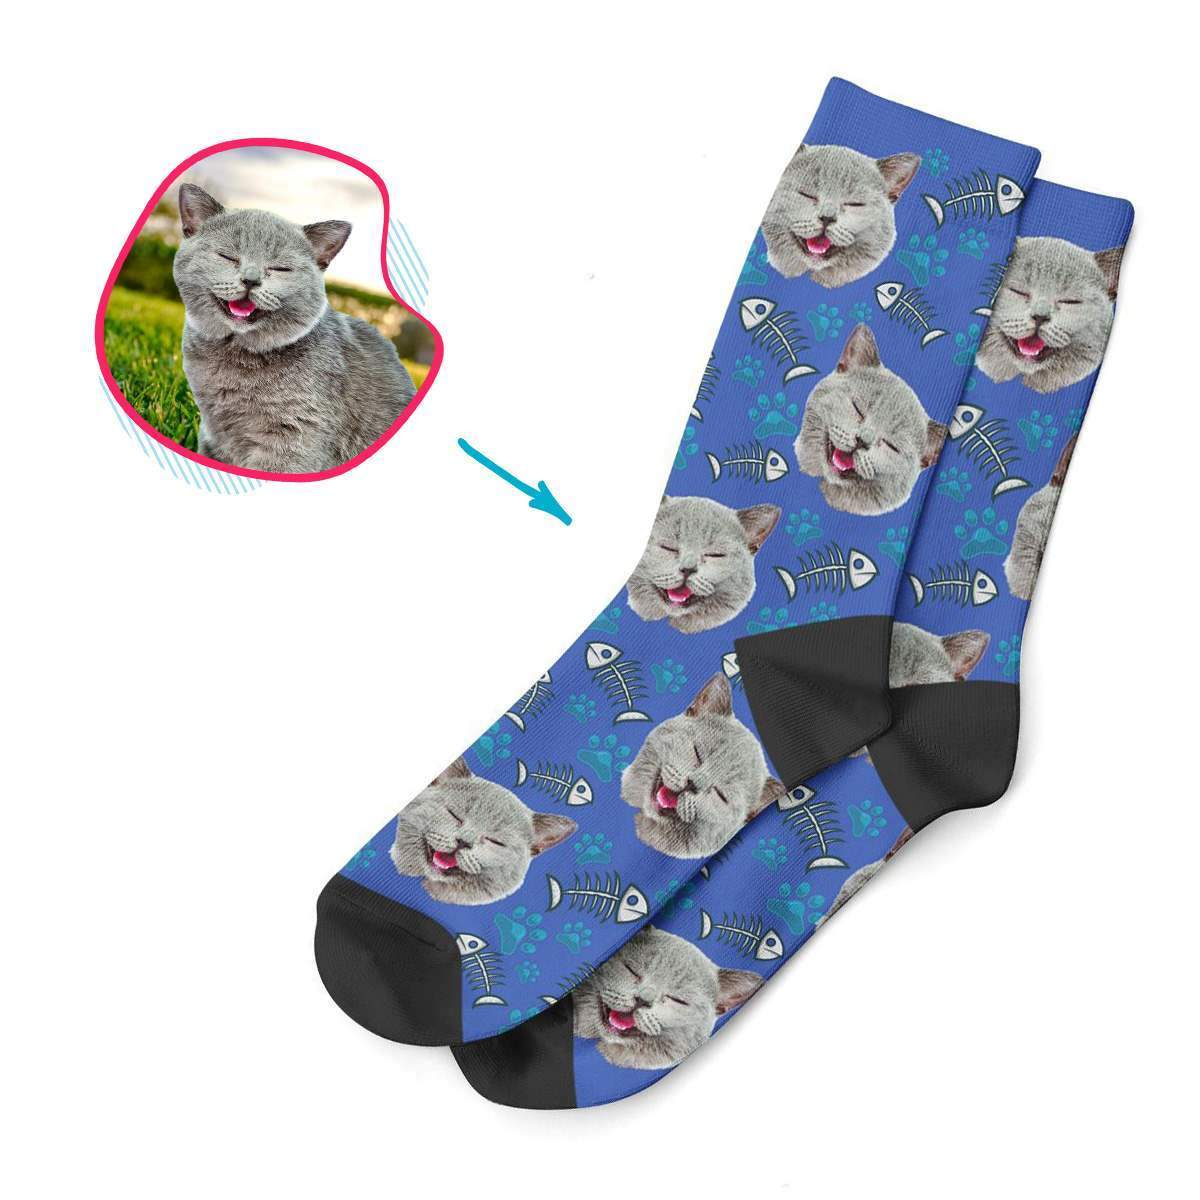 darkblue Cat socks personalized with photo of face printed on them